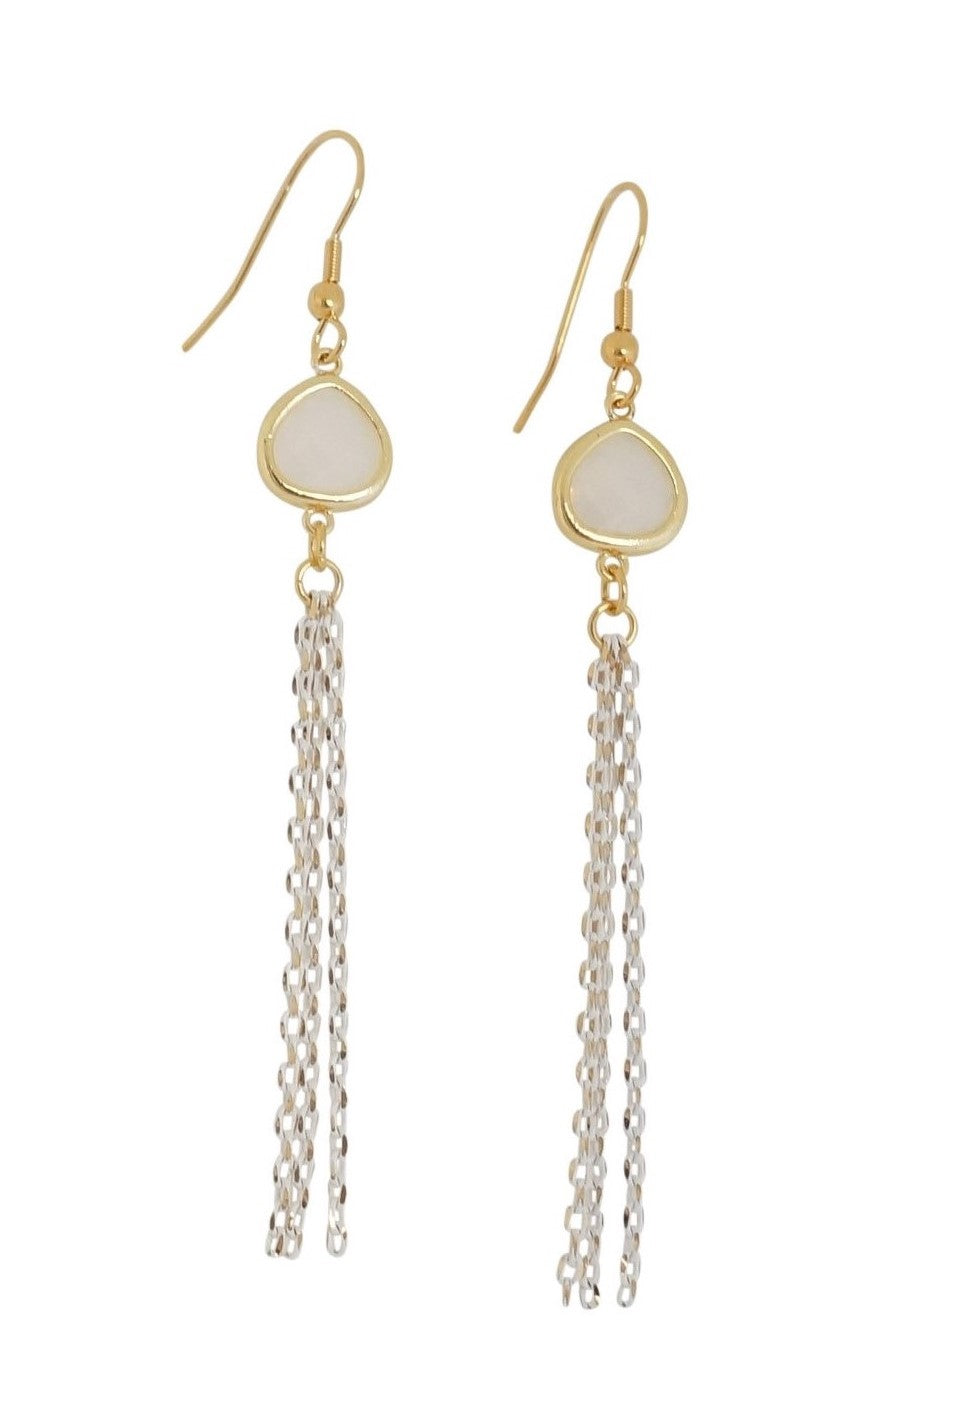 Inspire Earrings - Carolyn Hearn Designs